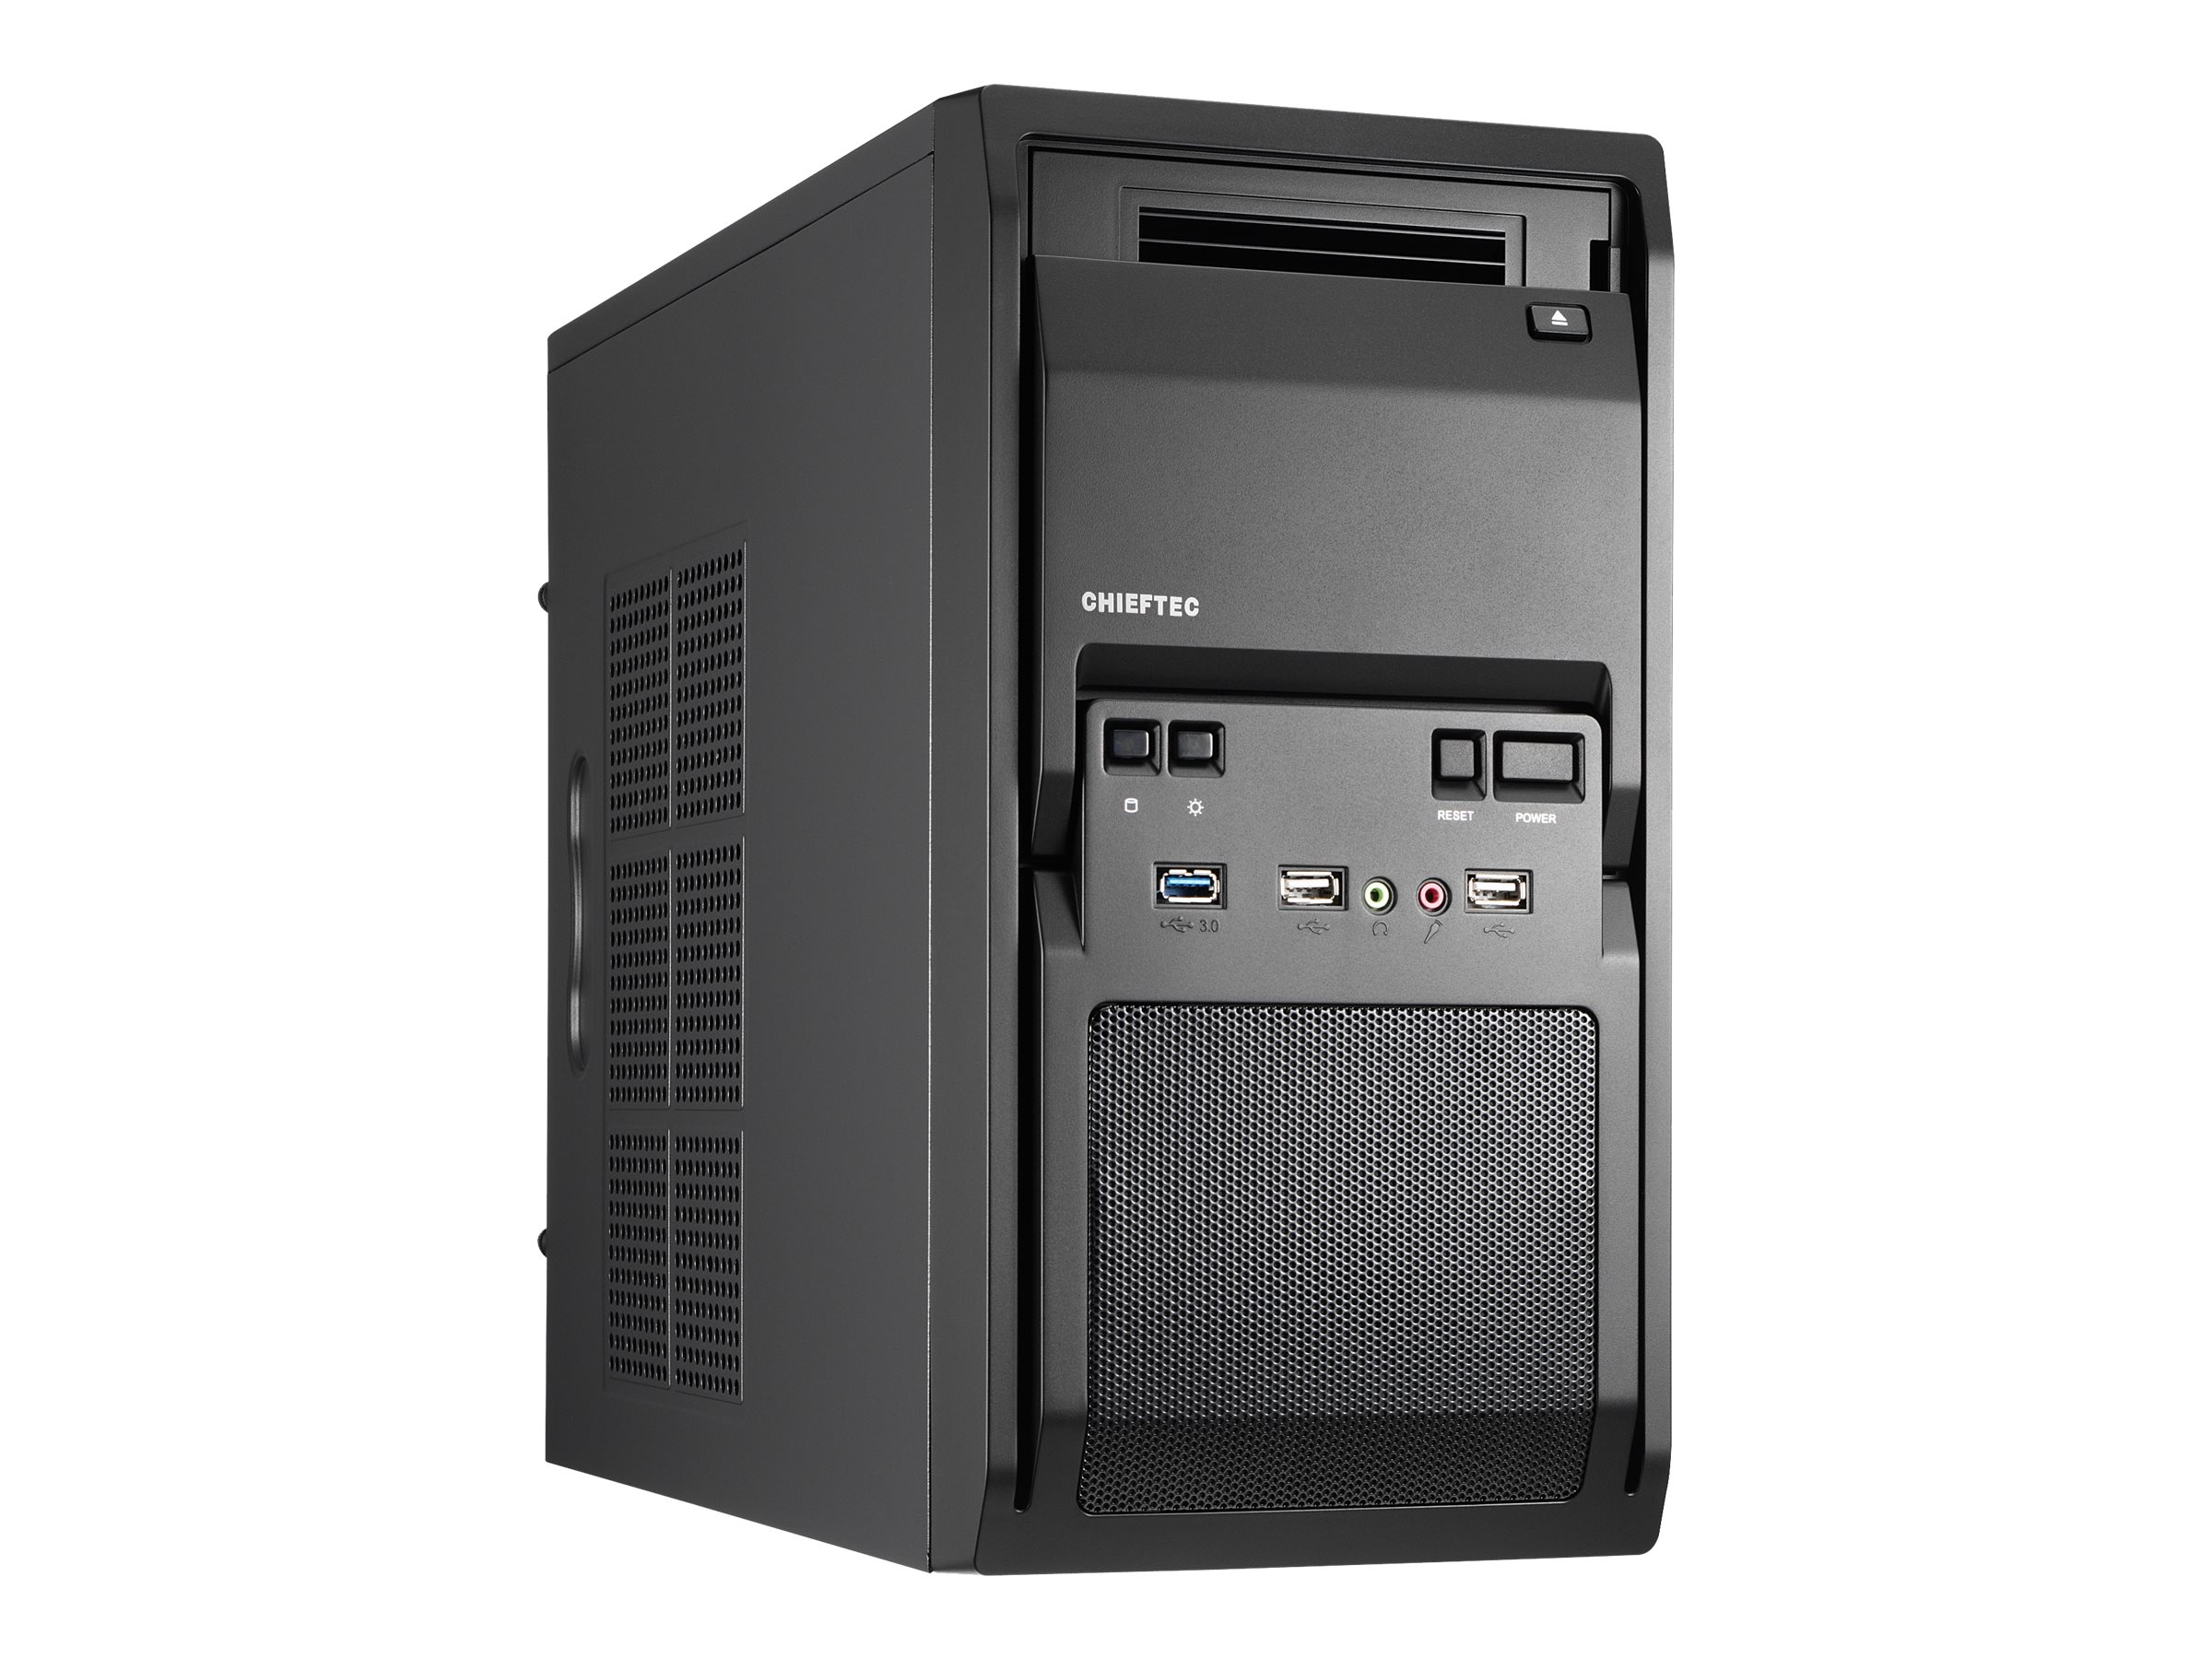 Chieftec LIBRA Series LT-01B - Tower - micro ATX 350 Watt - Schwarz - USB/Audio